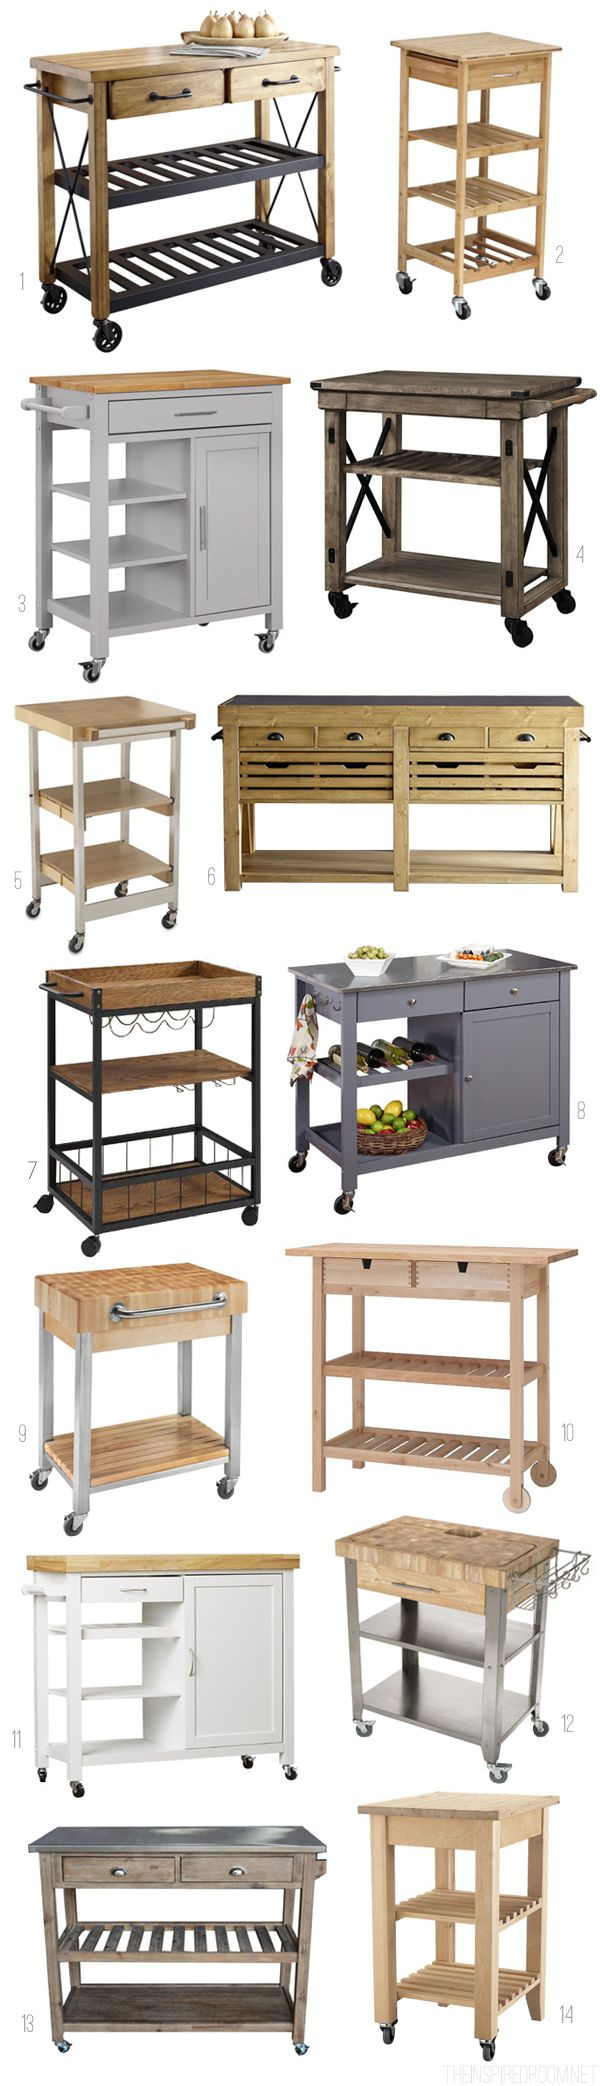 freestanding kitchen islands and carts freestanding kitchen diy kitchen island diy kitchen on kitchen island ideas kitchen bar carts id=56877